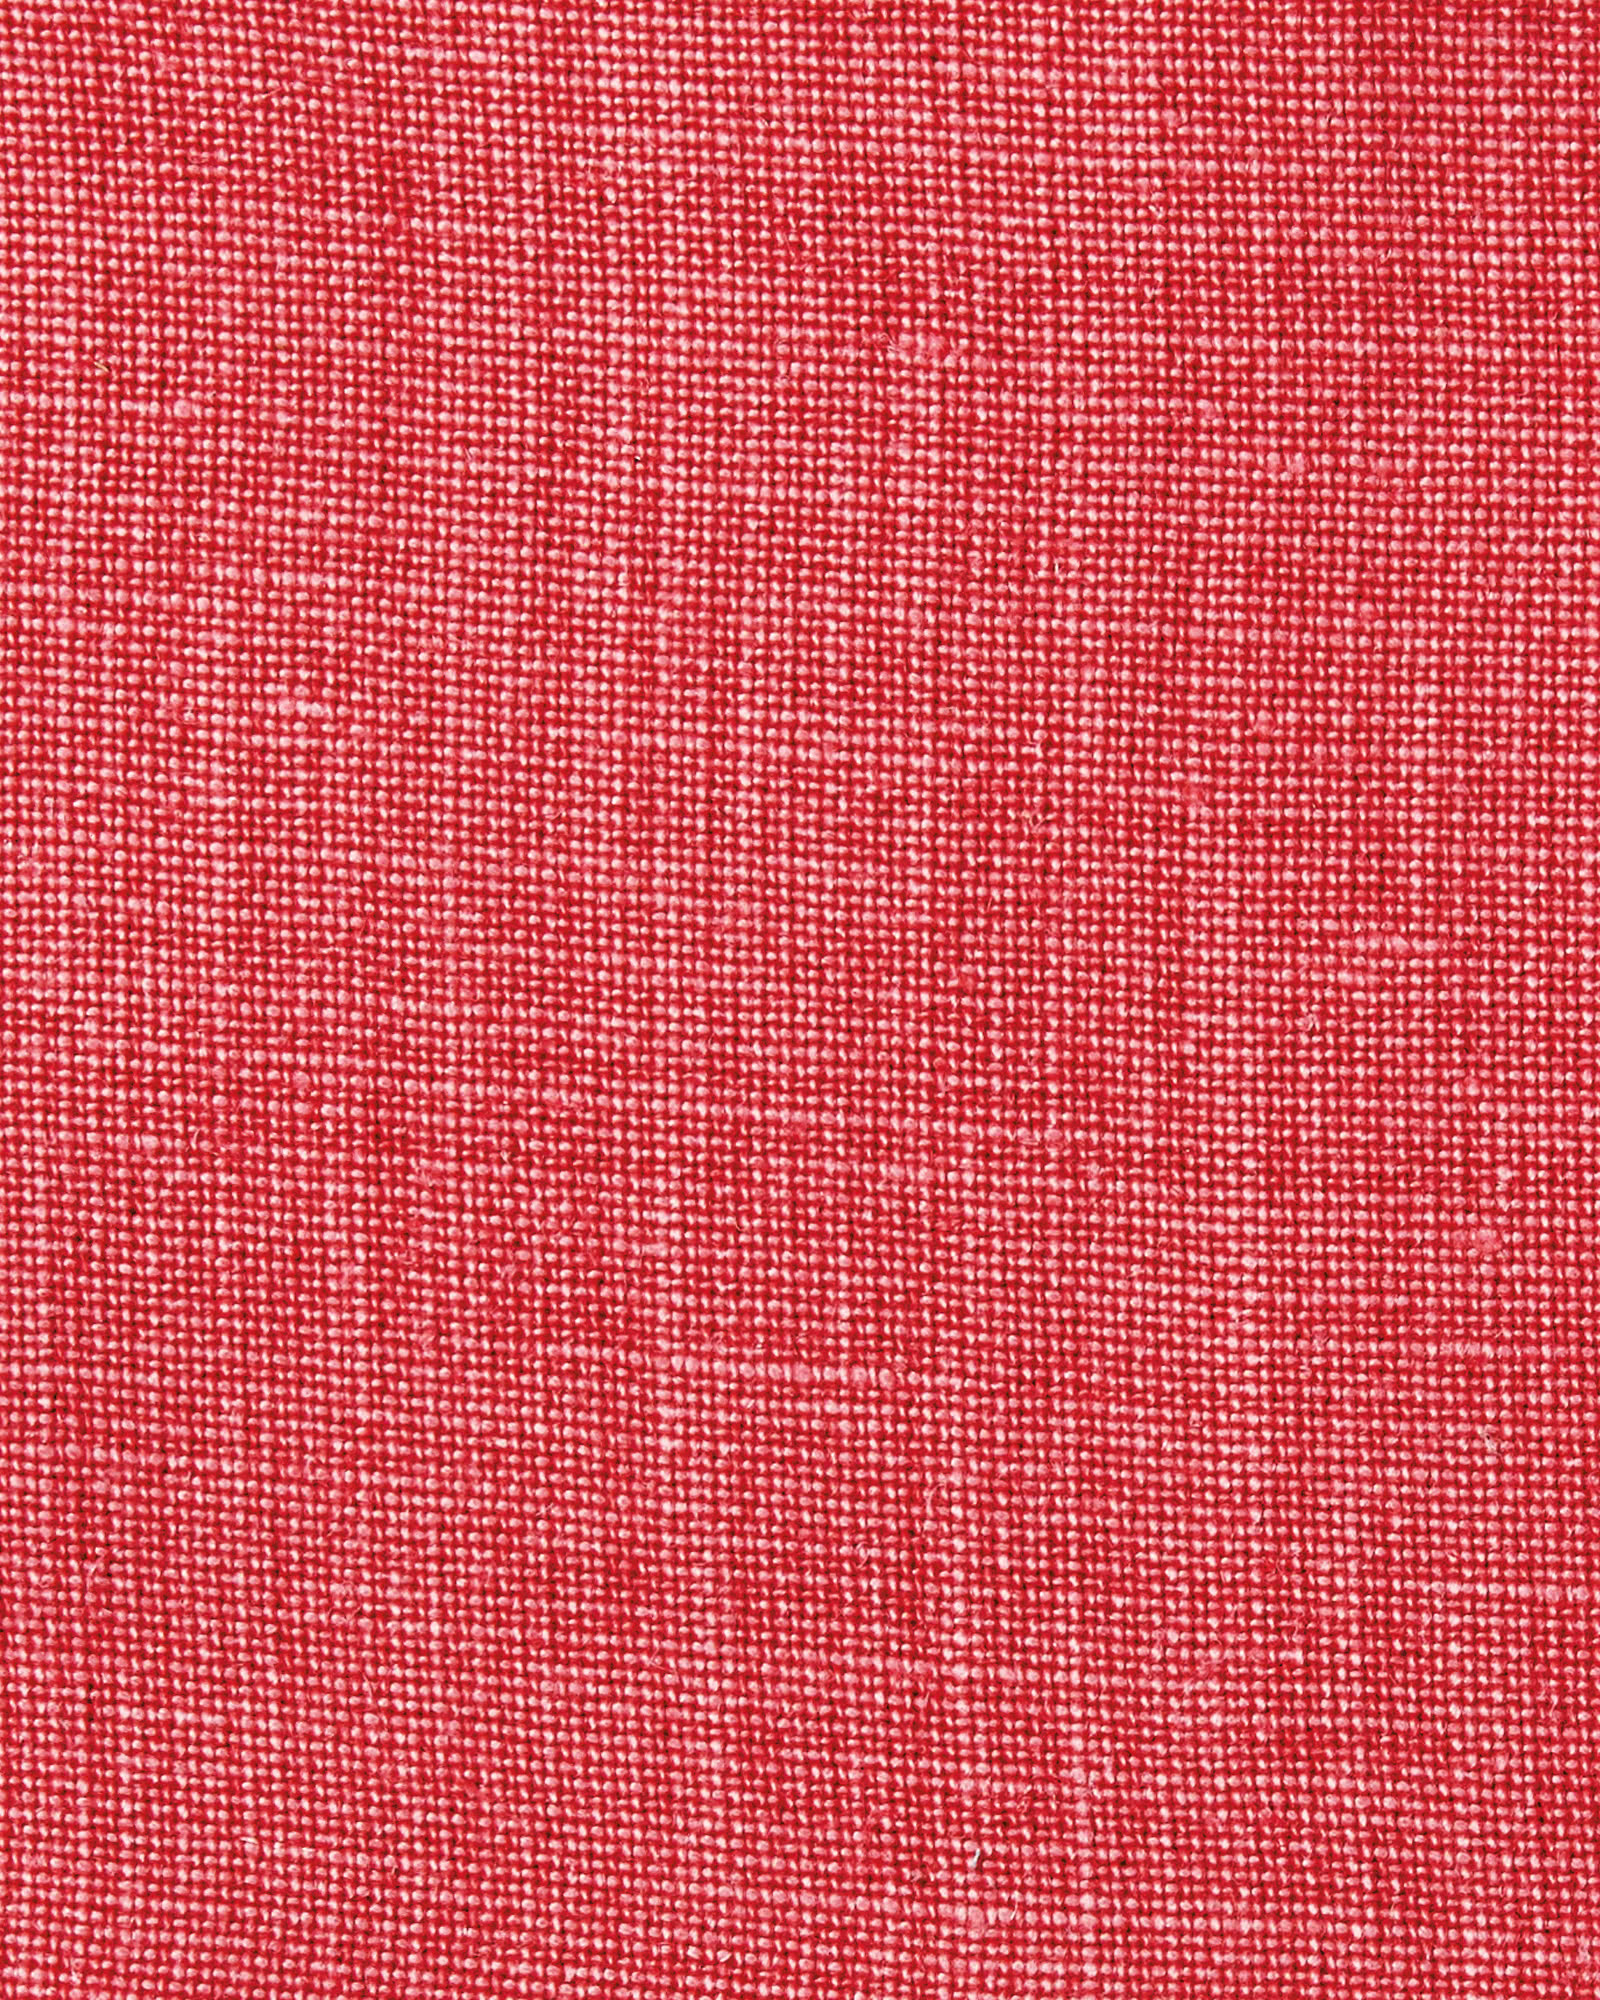 Washed Linen Fabric - Nantucket Red, Nantucket Red